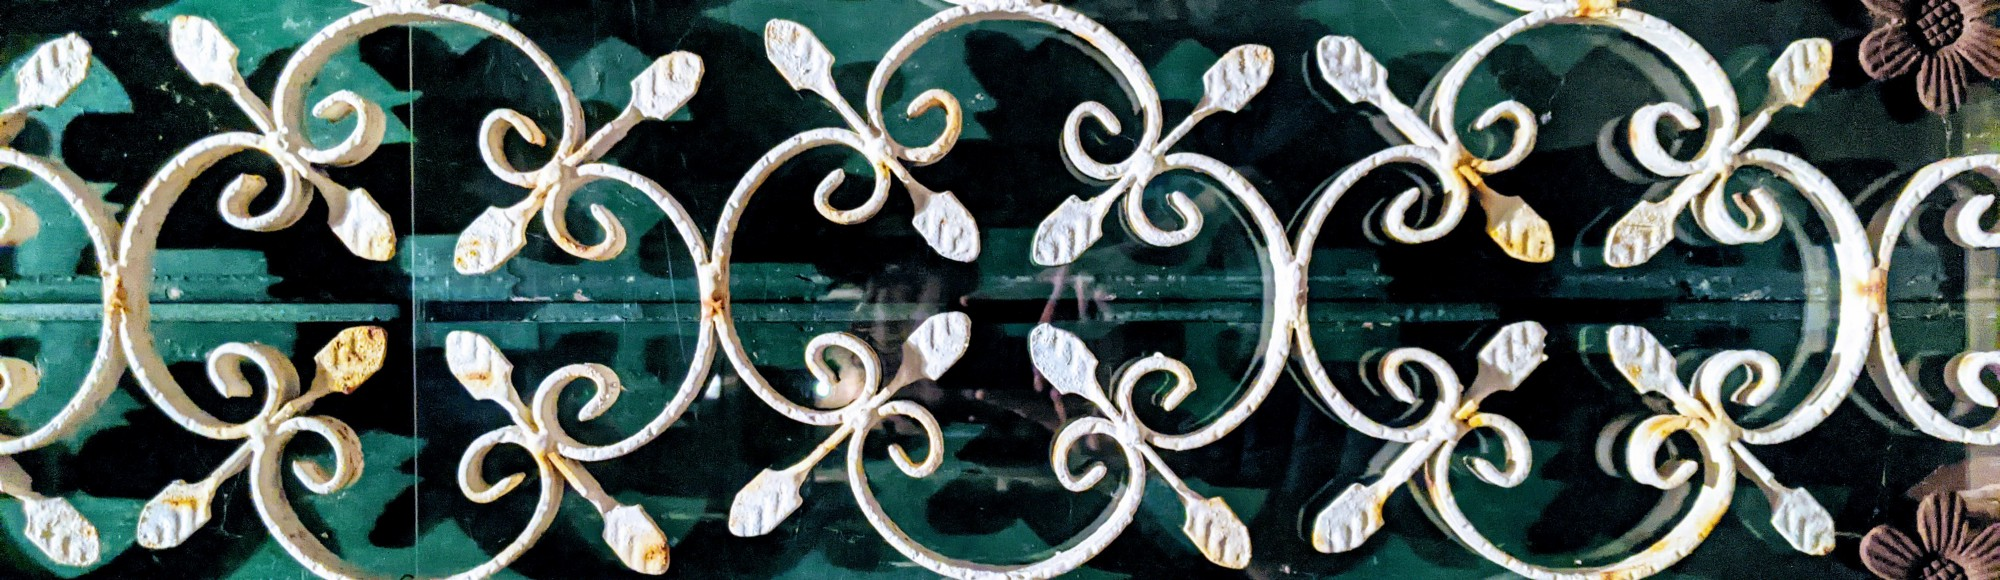 Wrought Iron Fleur-de-lis on a saturated, green background